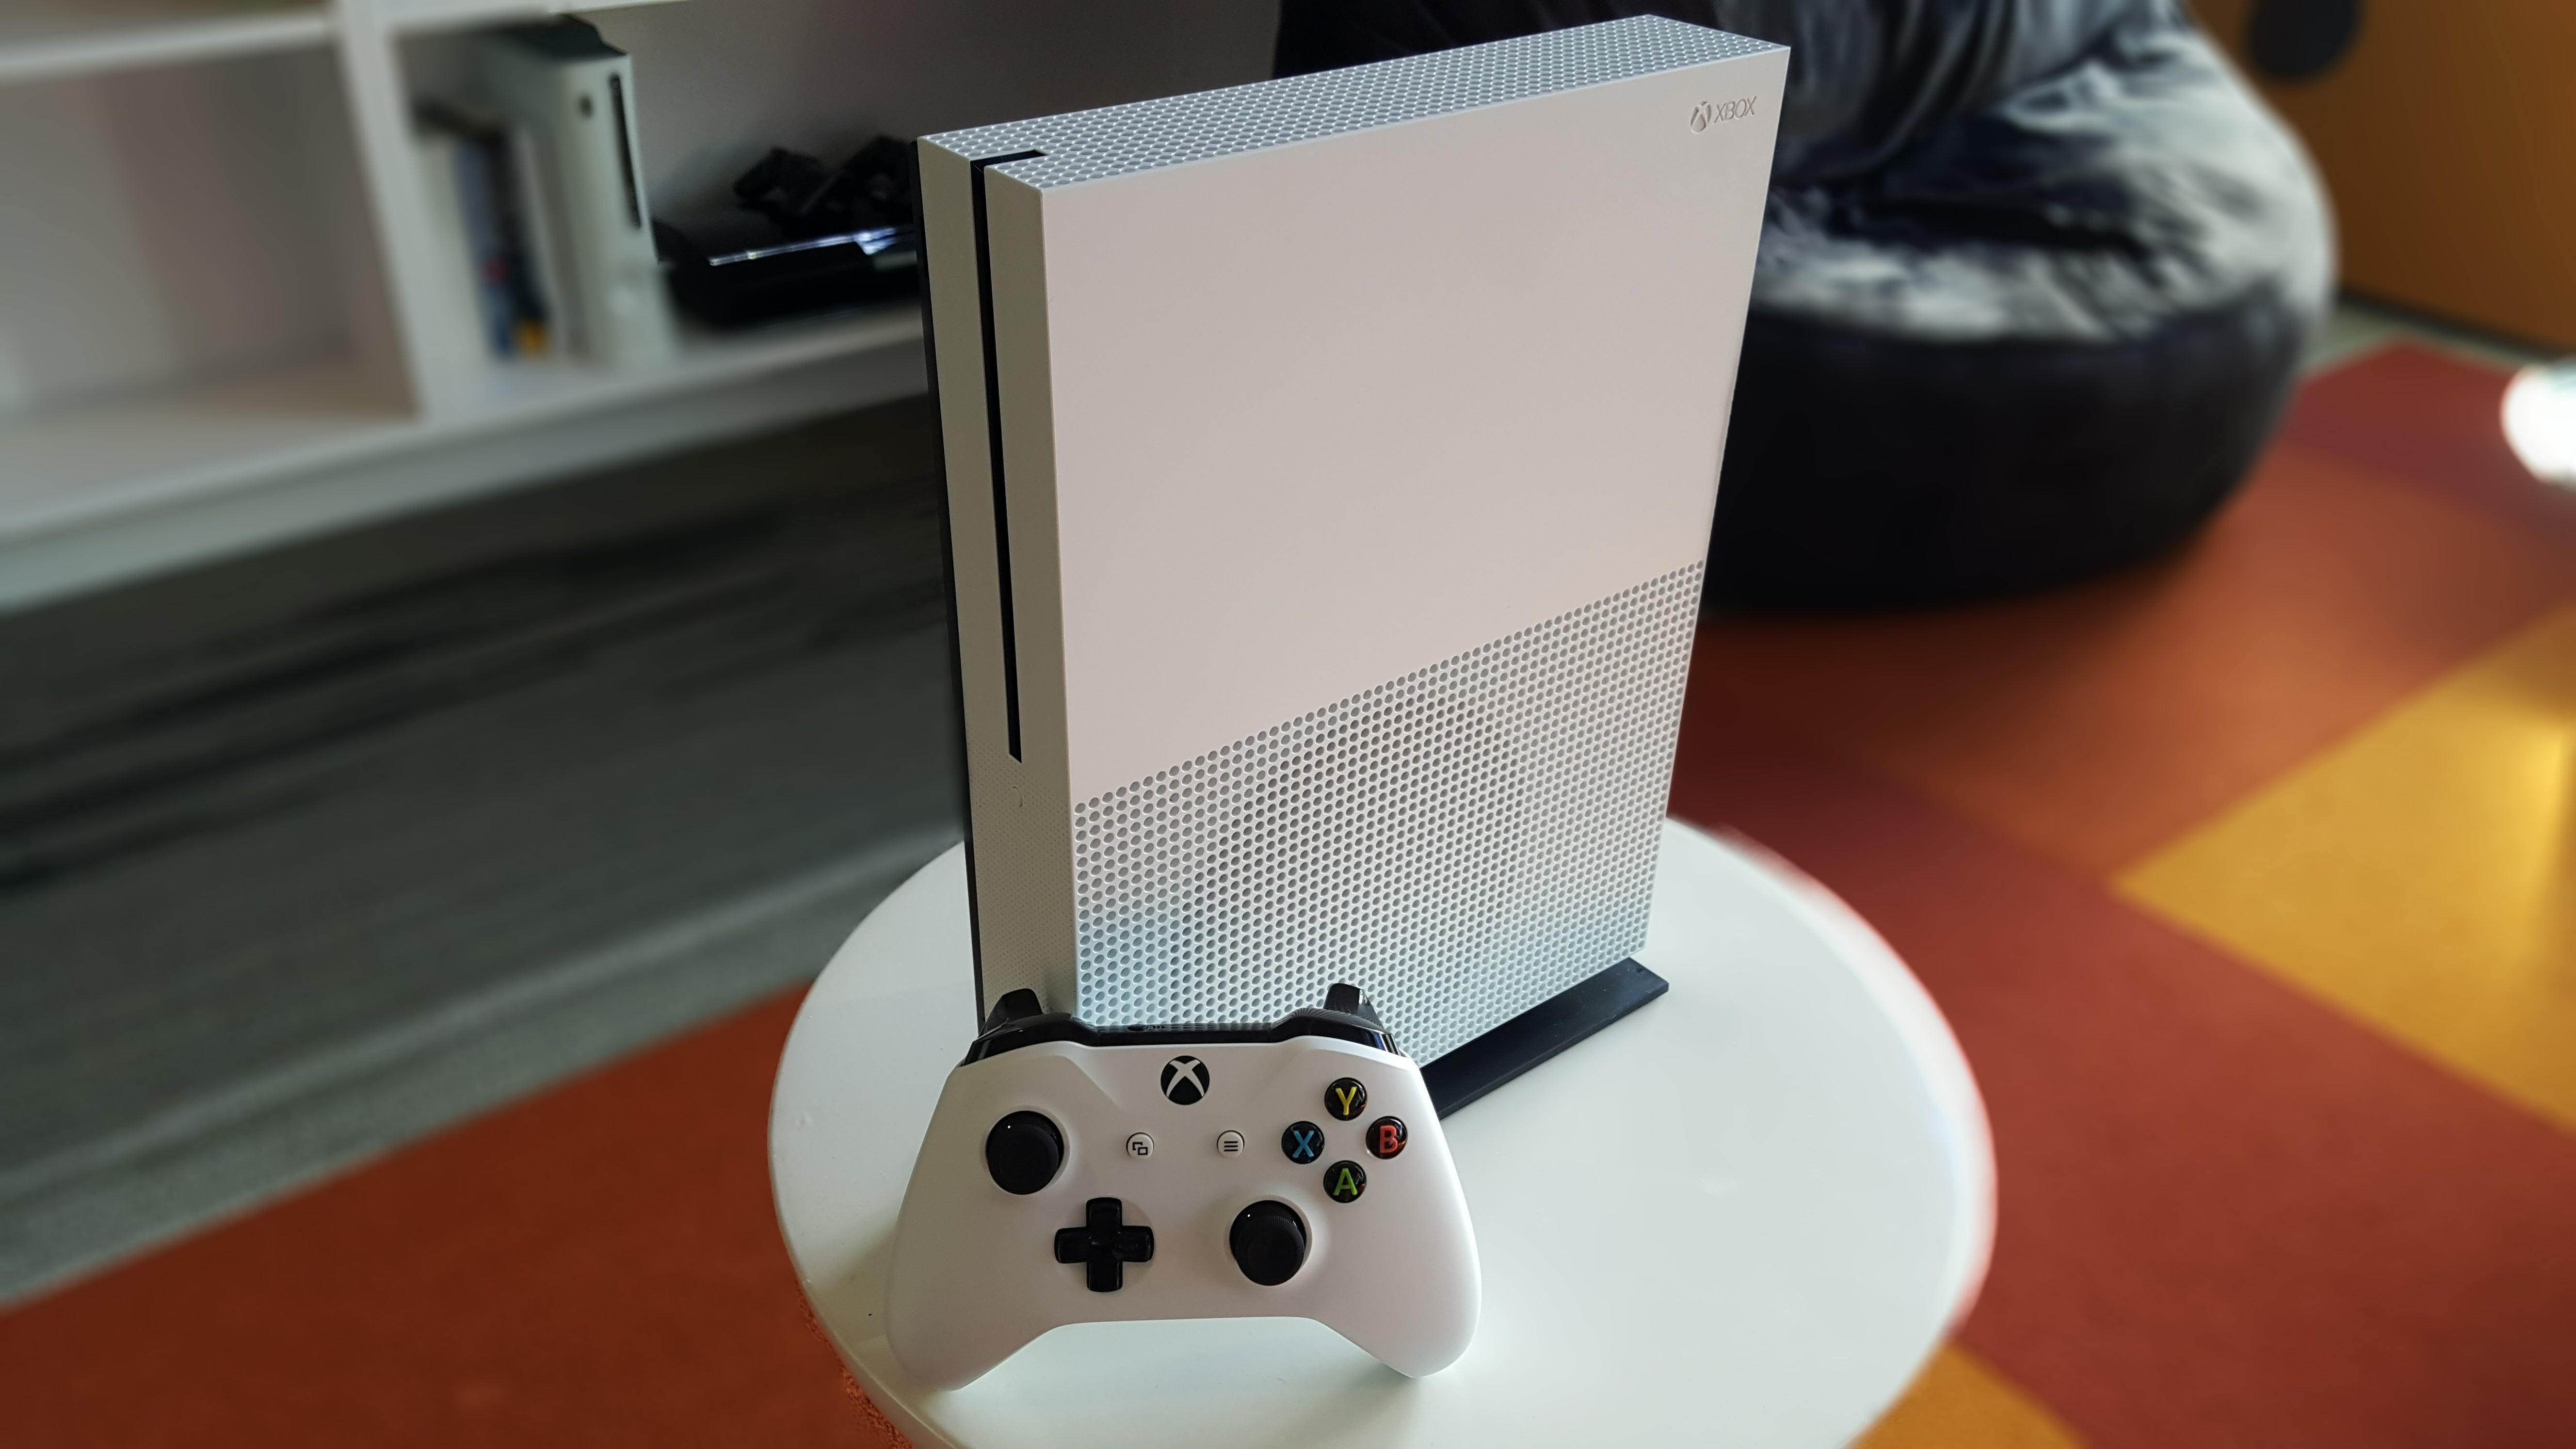 Xbox One S Review The Moves Into 4k Generation Pcworld 360 Slim Controller Diagram Free Image About Wiring And